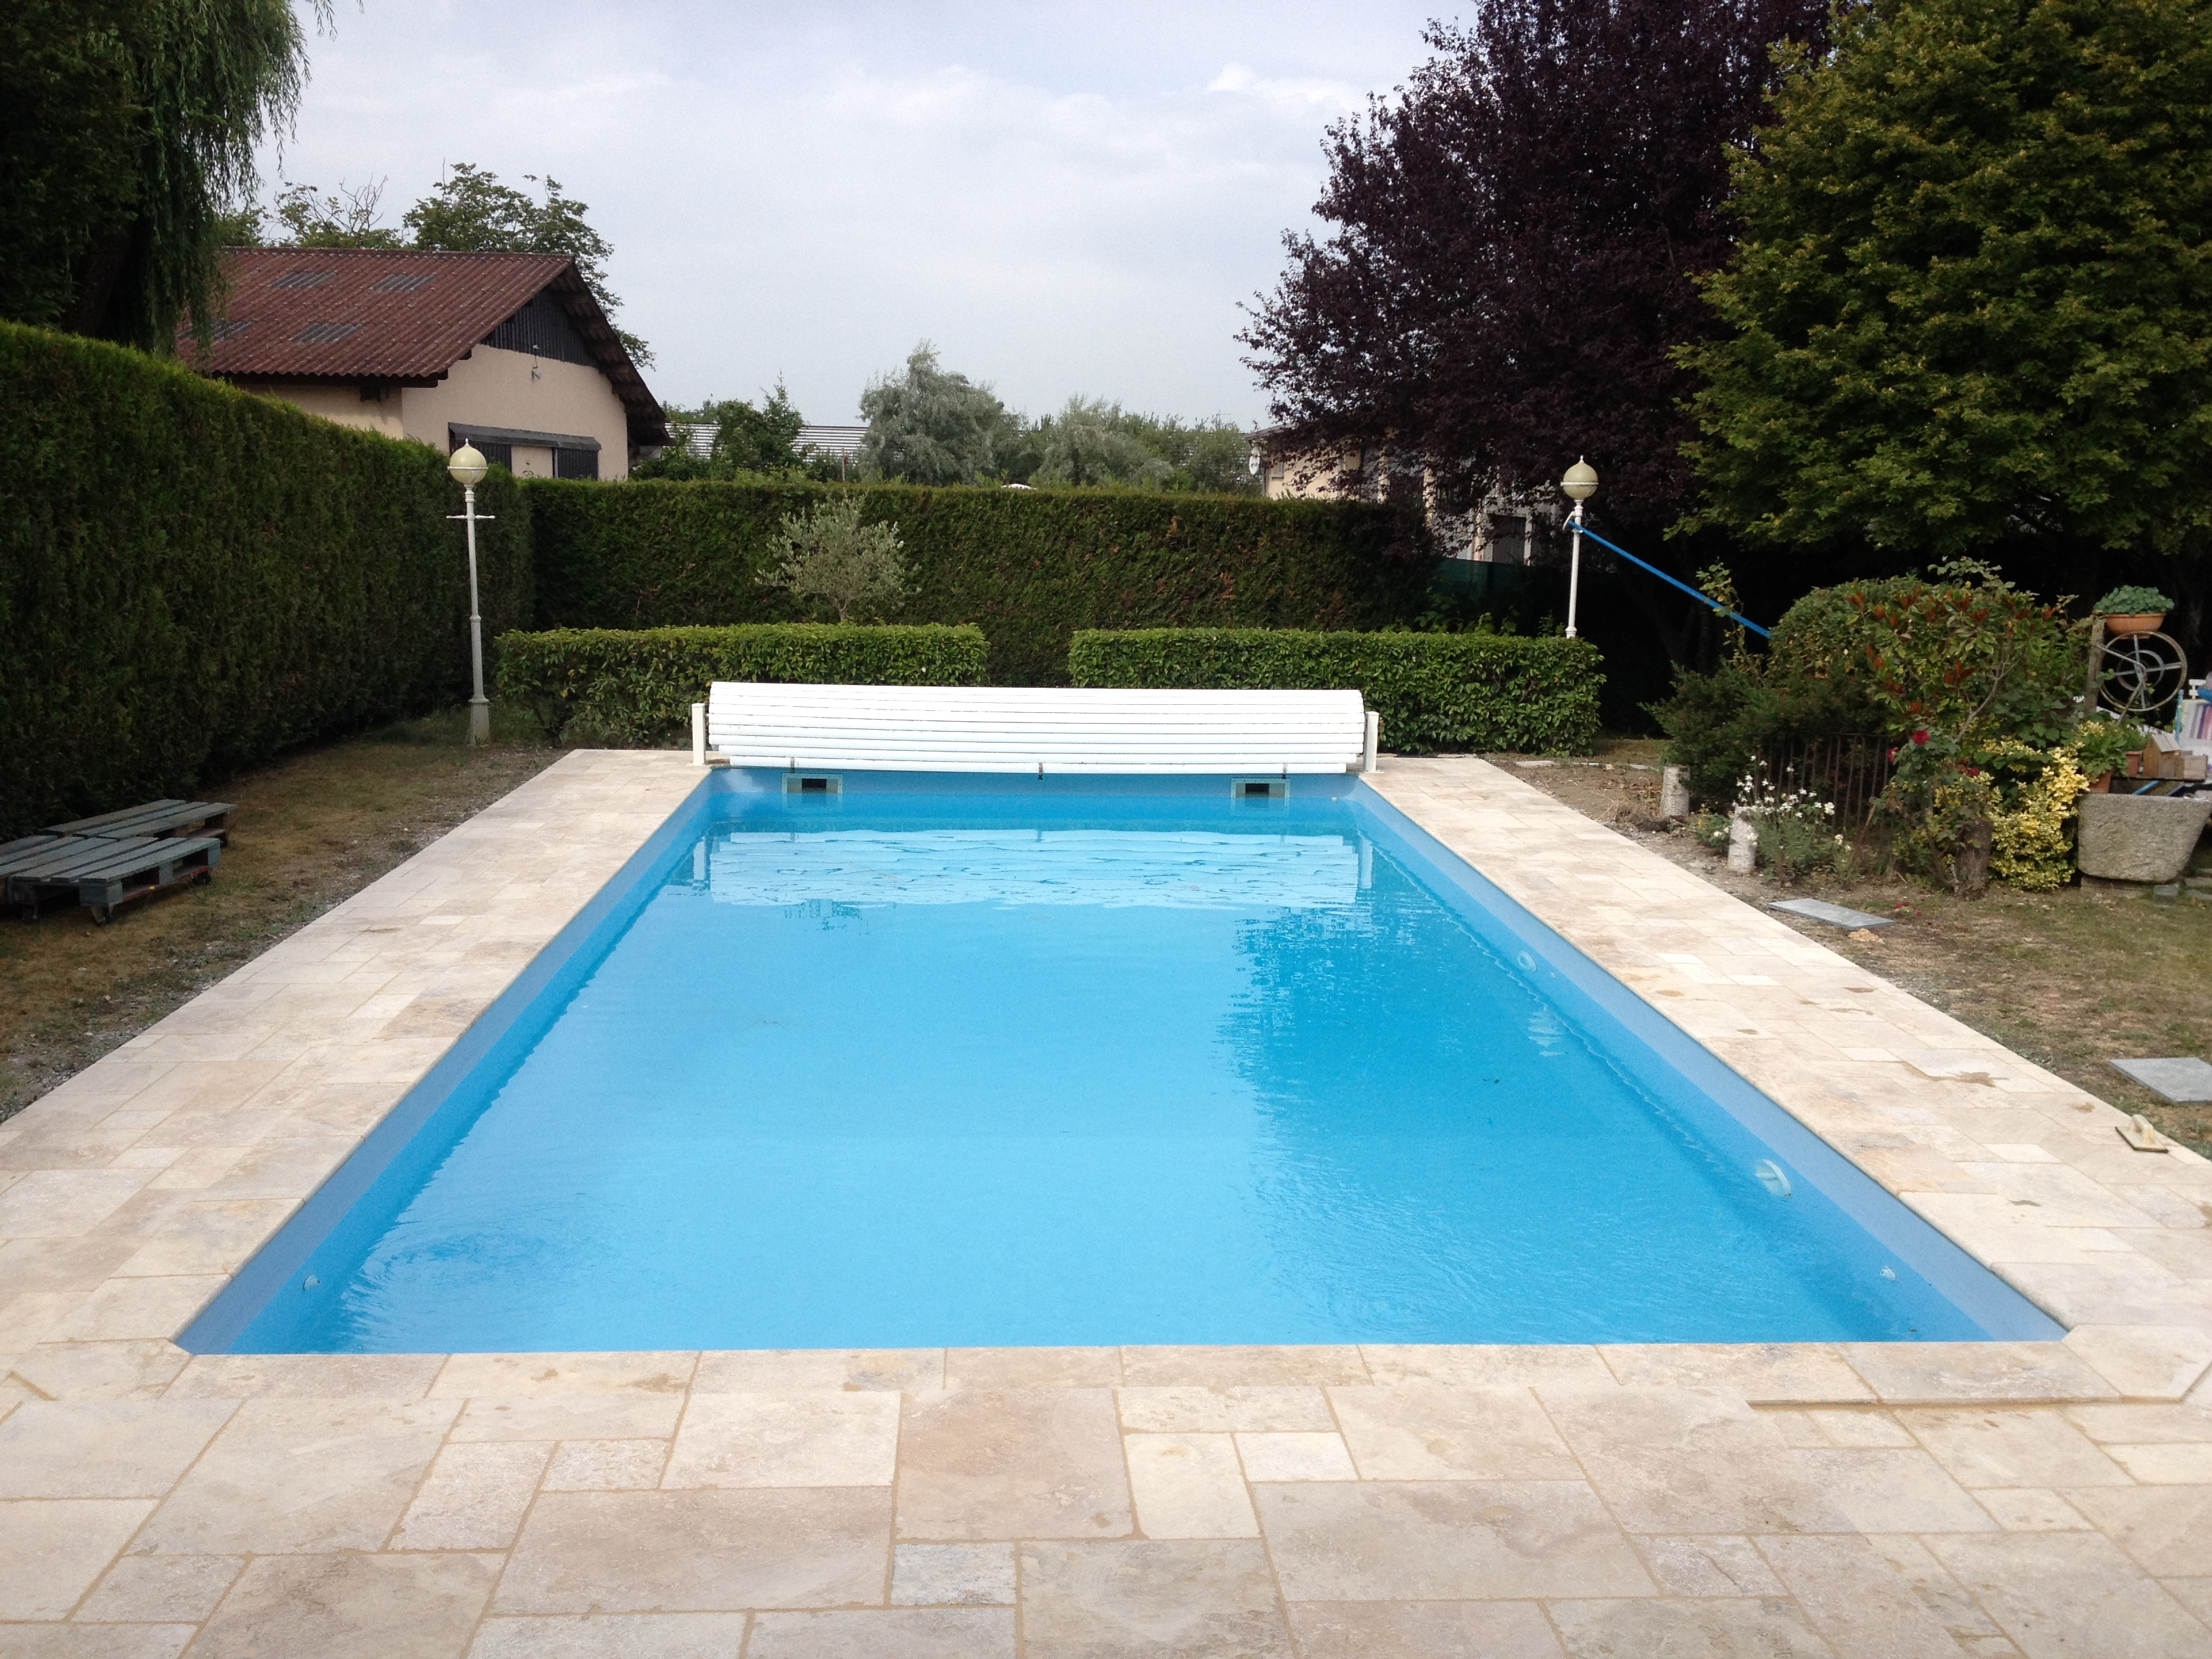 Piscines reflet carrelage for Pose carrelage pierre